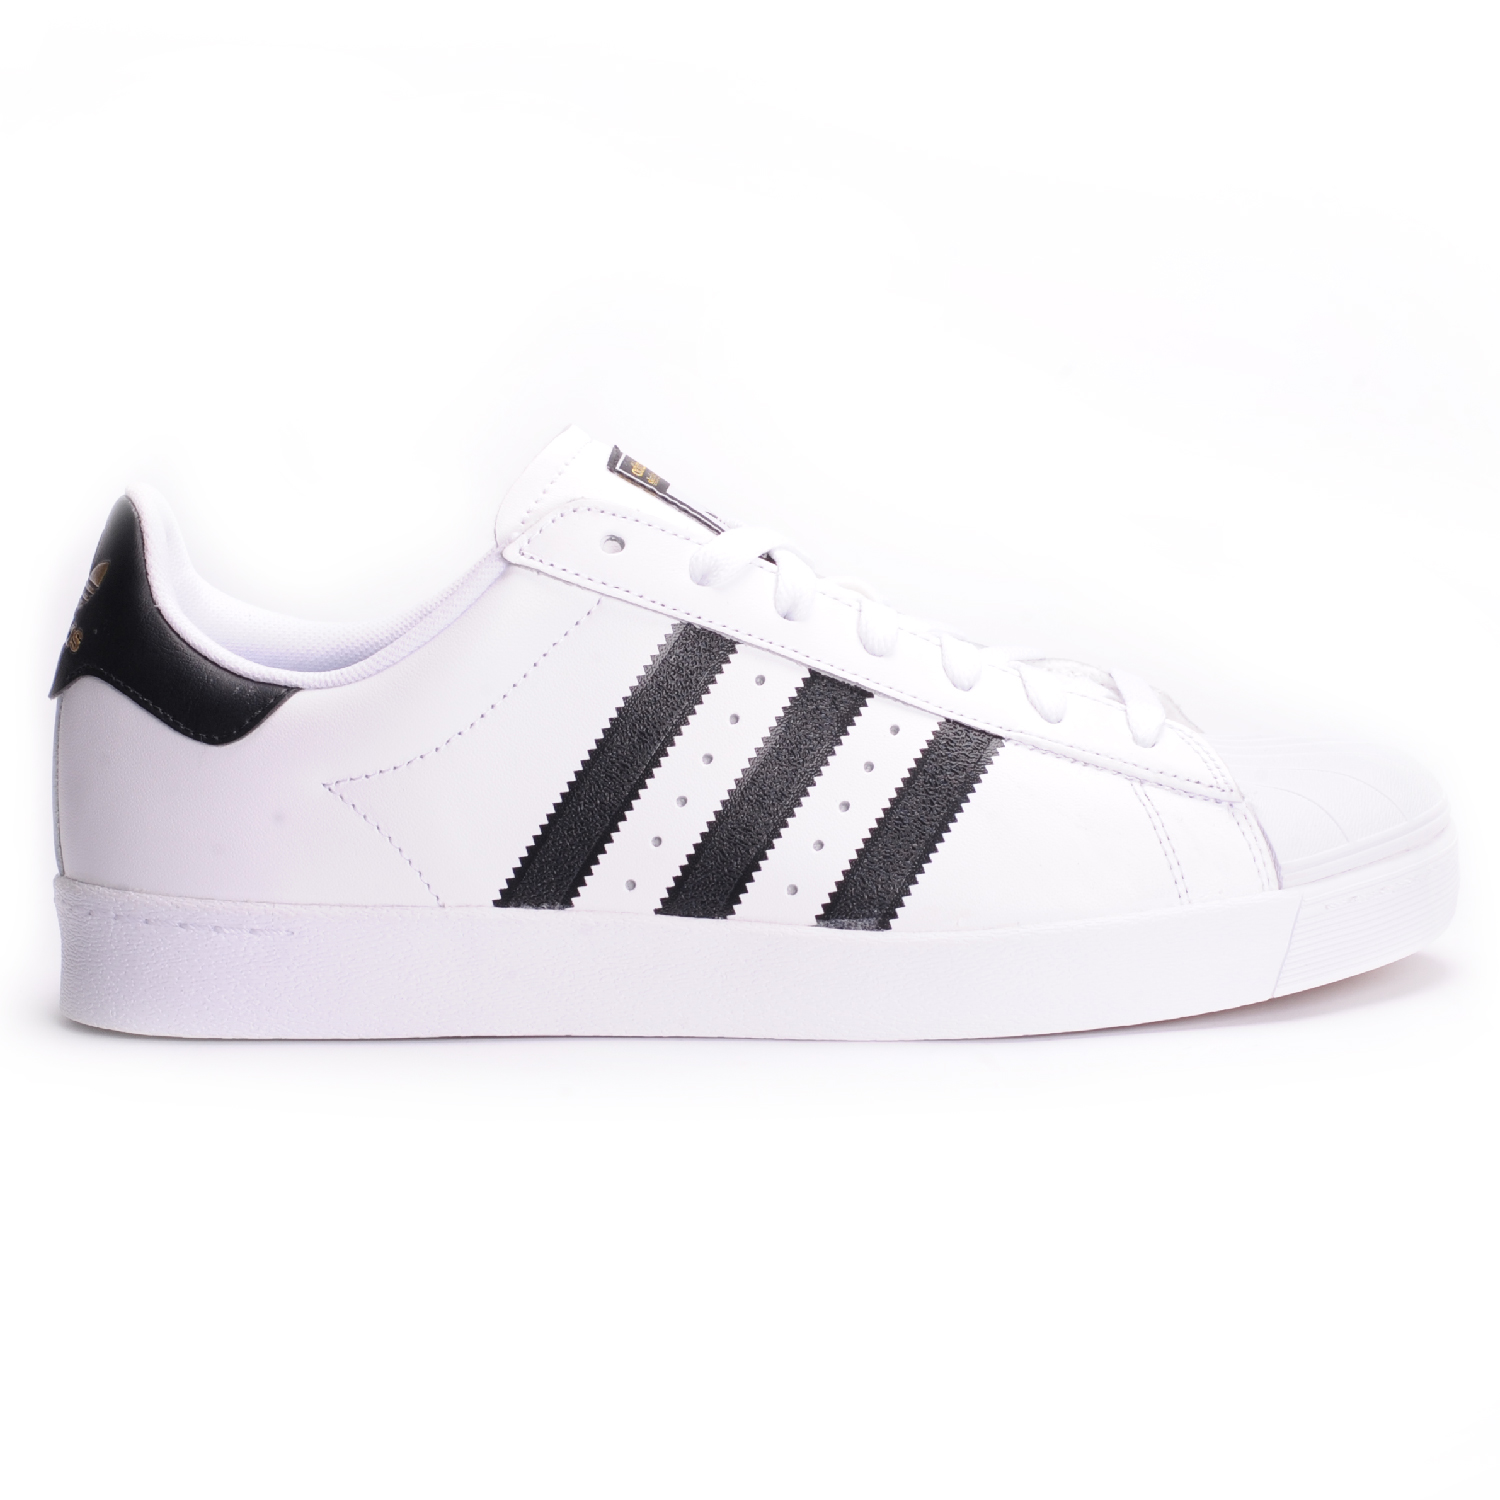 Cheap Adidas Superstar Vulc ADV Black \\ u0026 White Shoes at Zumiez: PDP